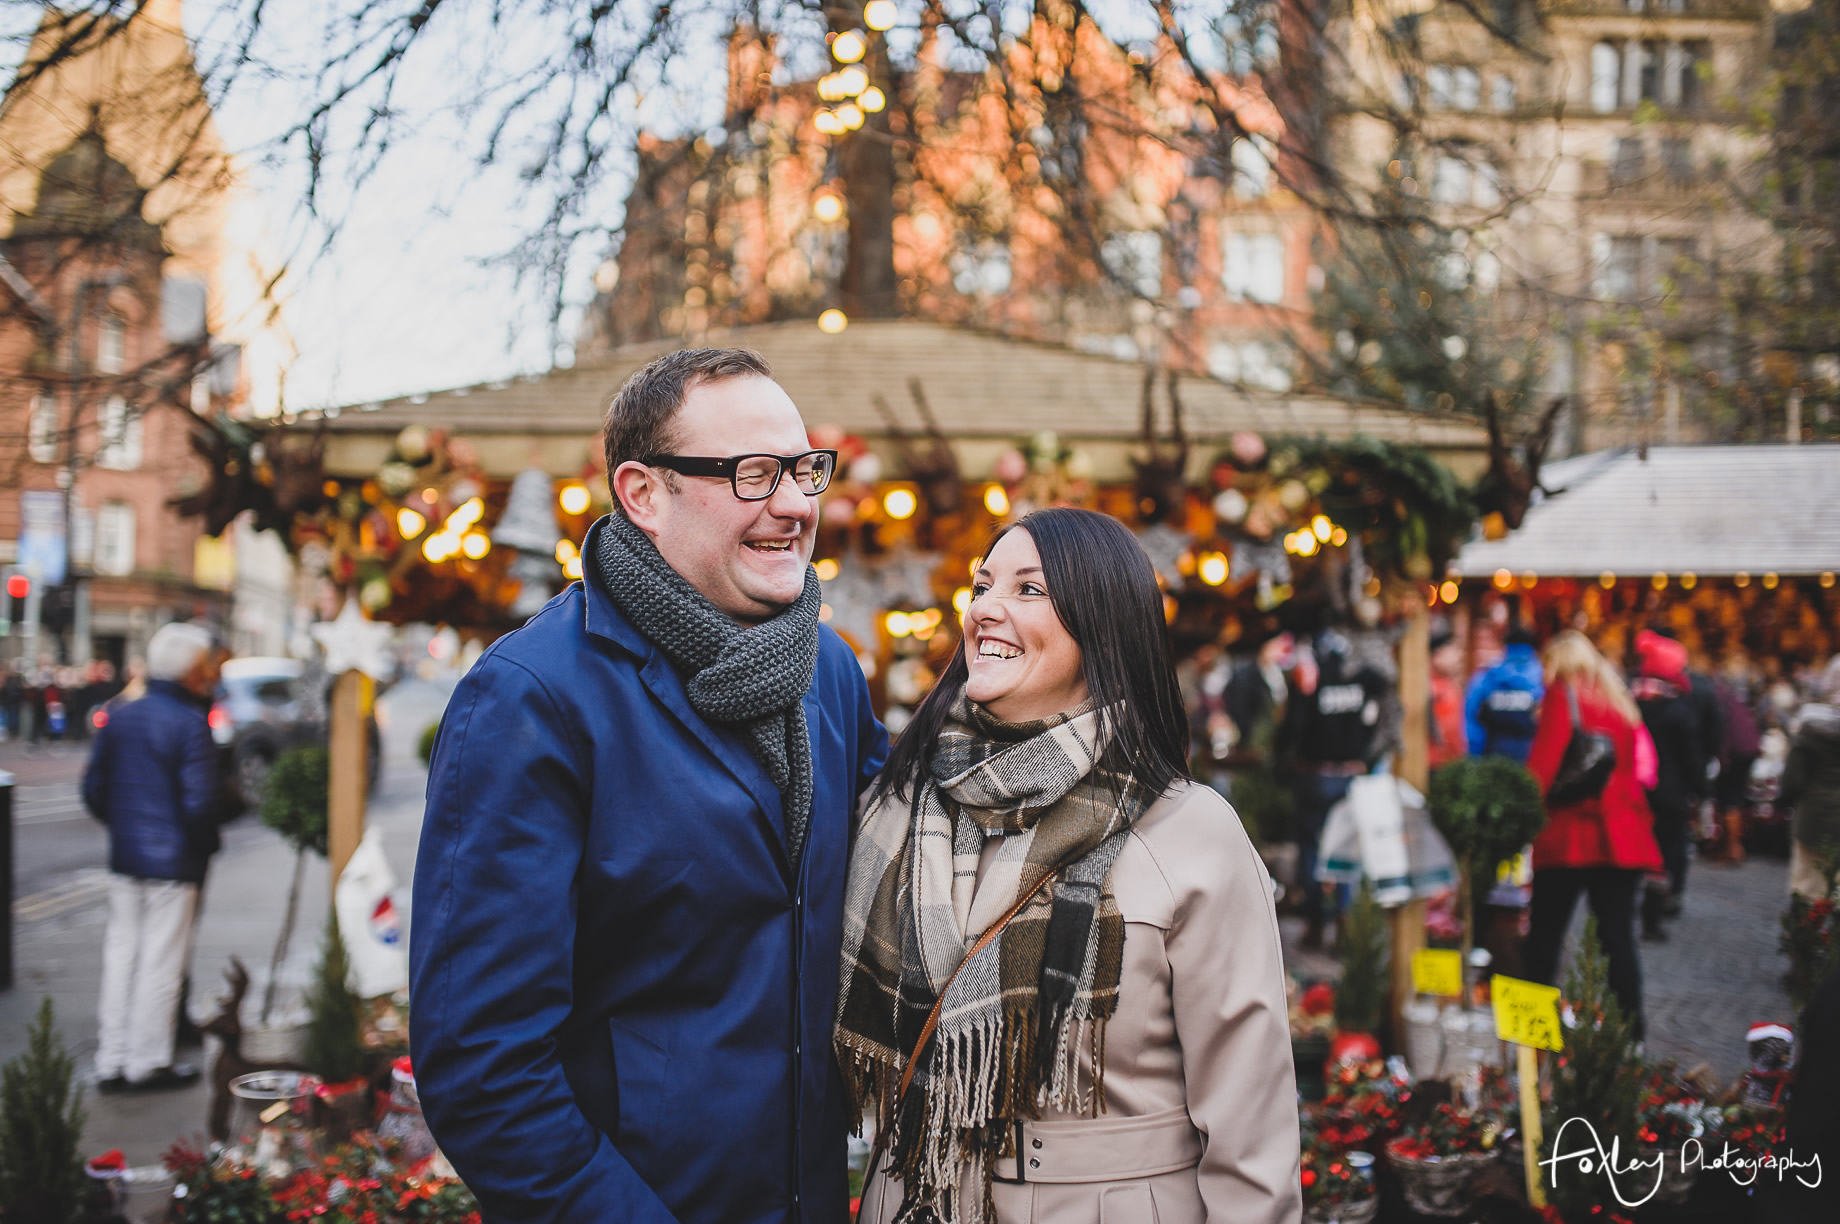 Angela and Andrew's Pre-Wedding Shoot at Manchester Christmas Markets 008